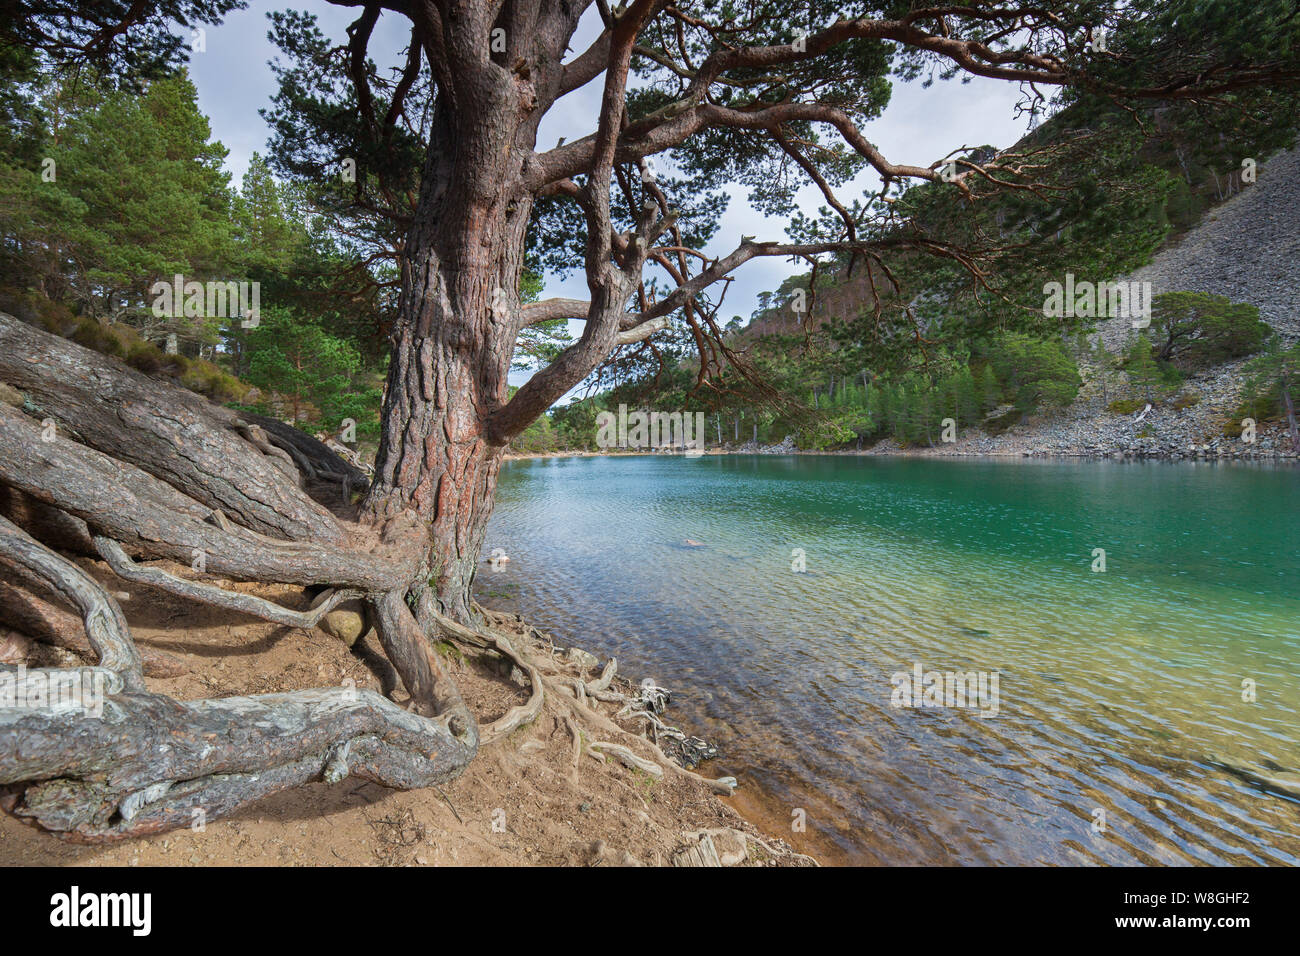 An Lochan Uaine, little loch in the Glenmore Forest Park, Cairngorms National Park near Aviemore, Badenoch and Strathspey, Scotland, UK Stock Photo